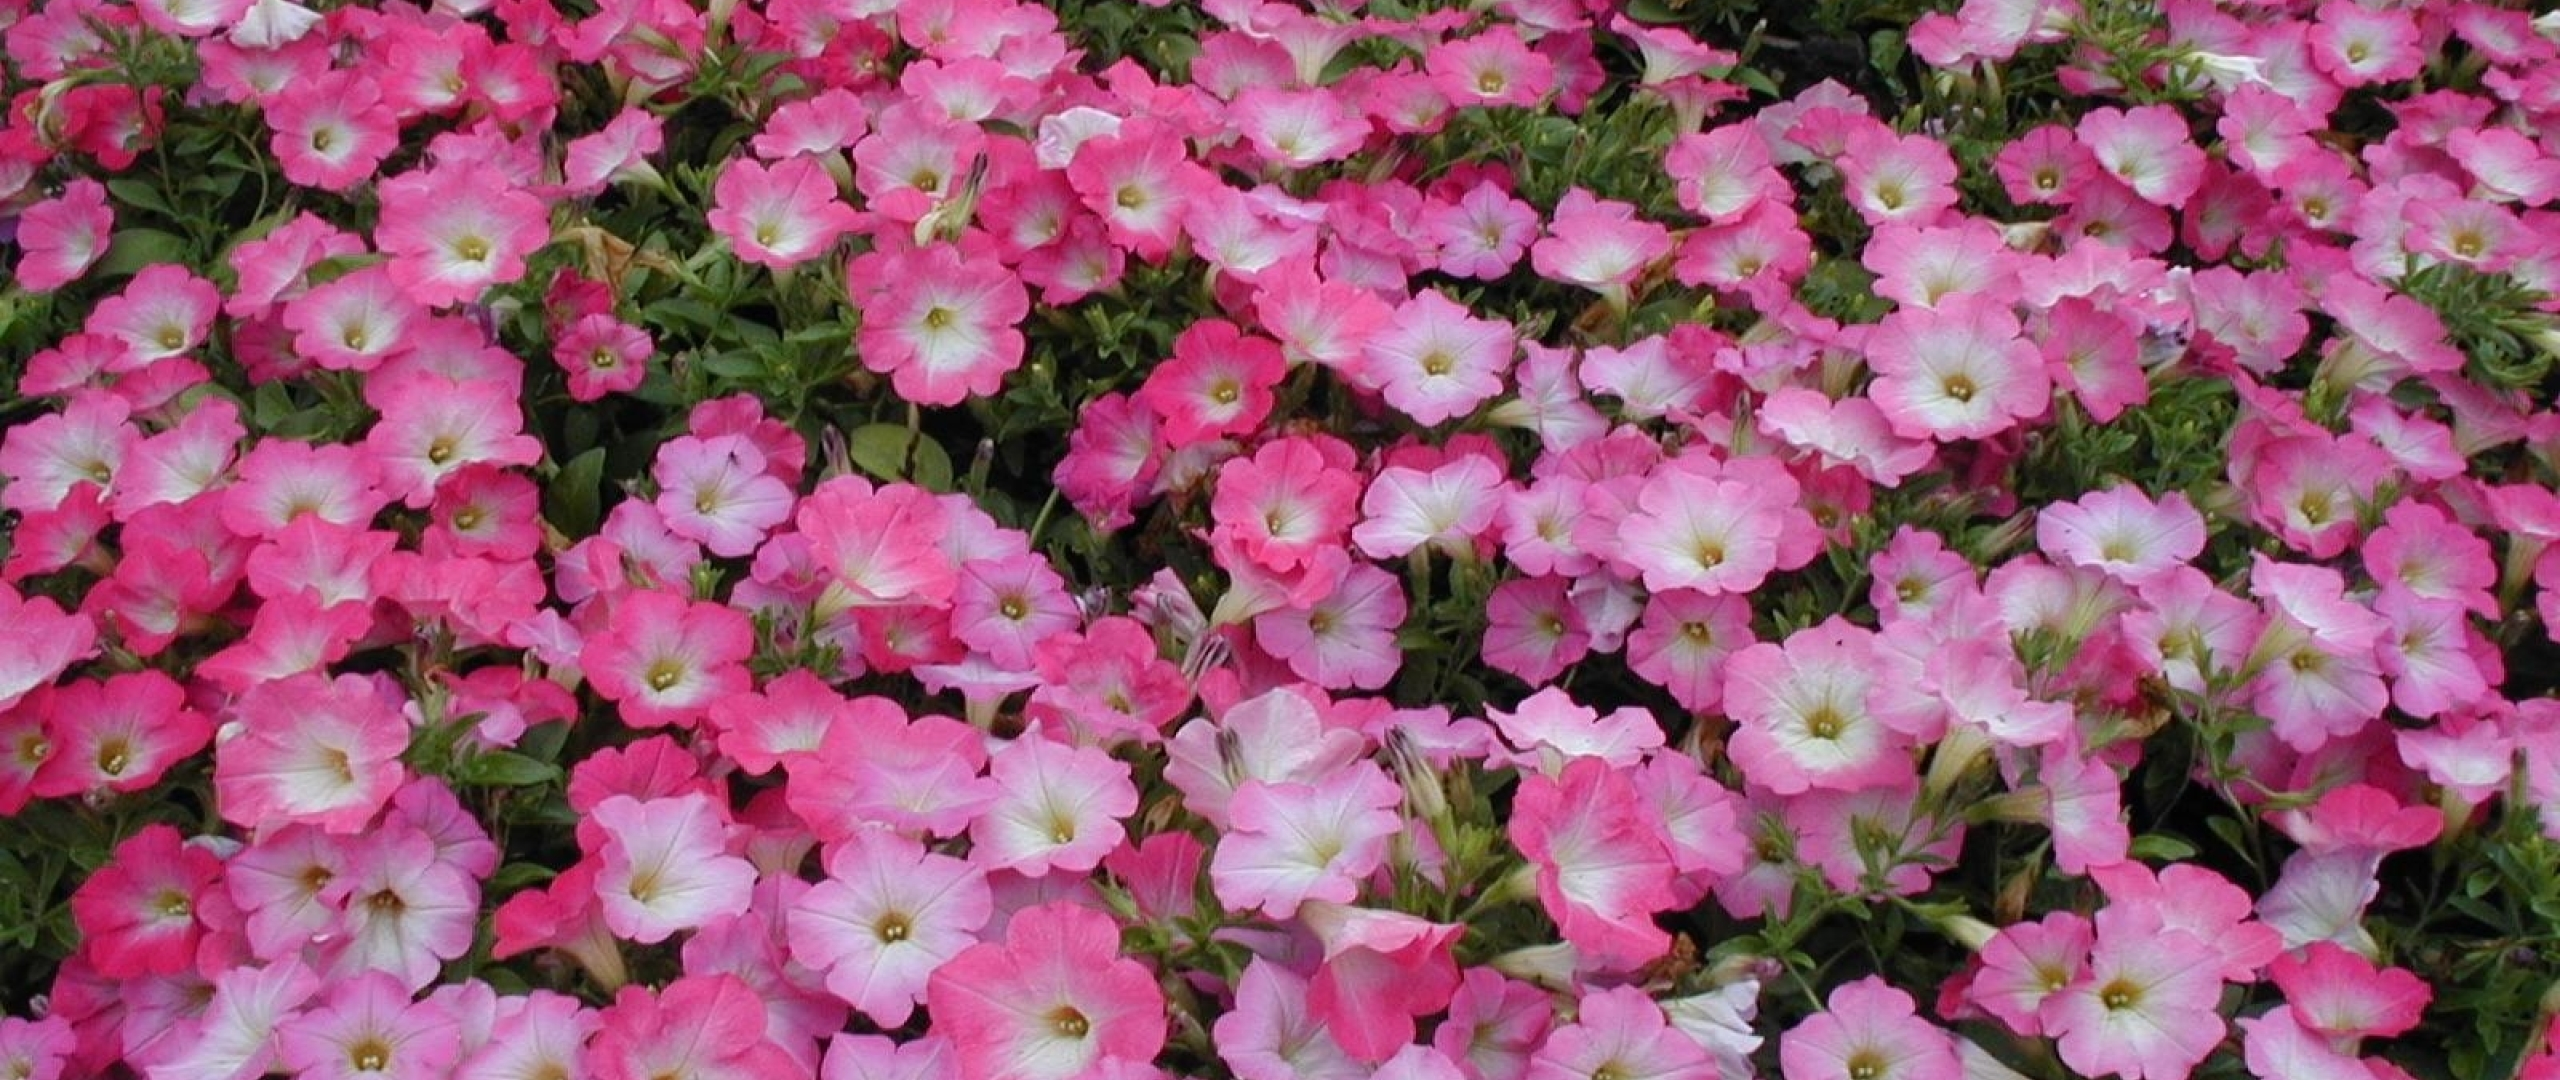 2560x1080 Petunia Flowers Flowerbed 2560x1080 Resolution Wallpaper Hd Flowers 4k Wallpapers Images Photos And Background